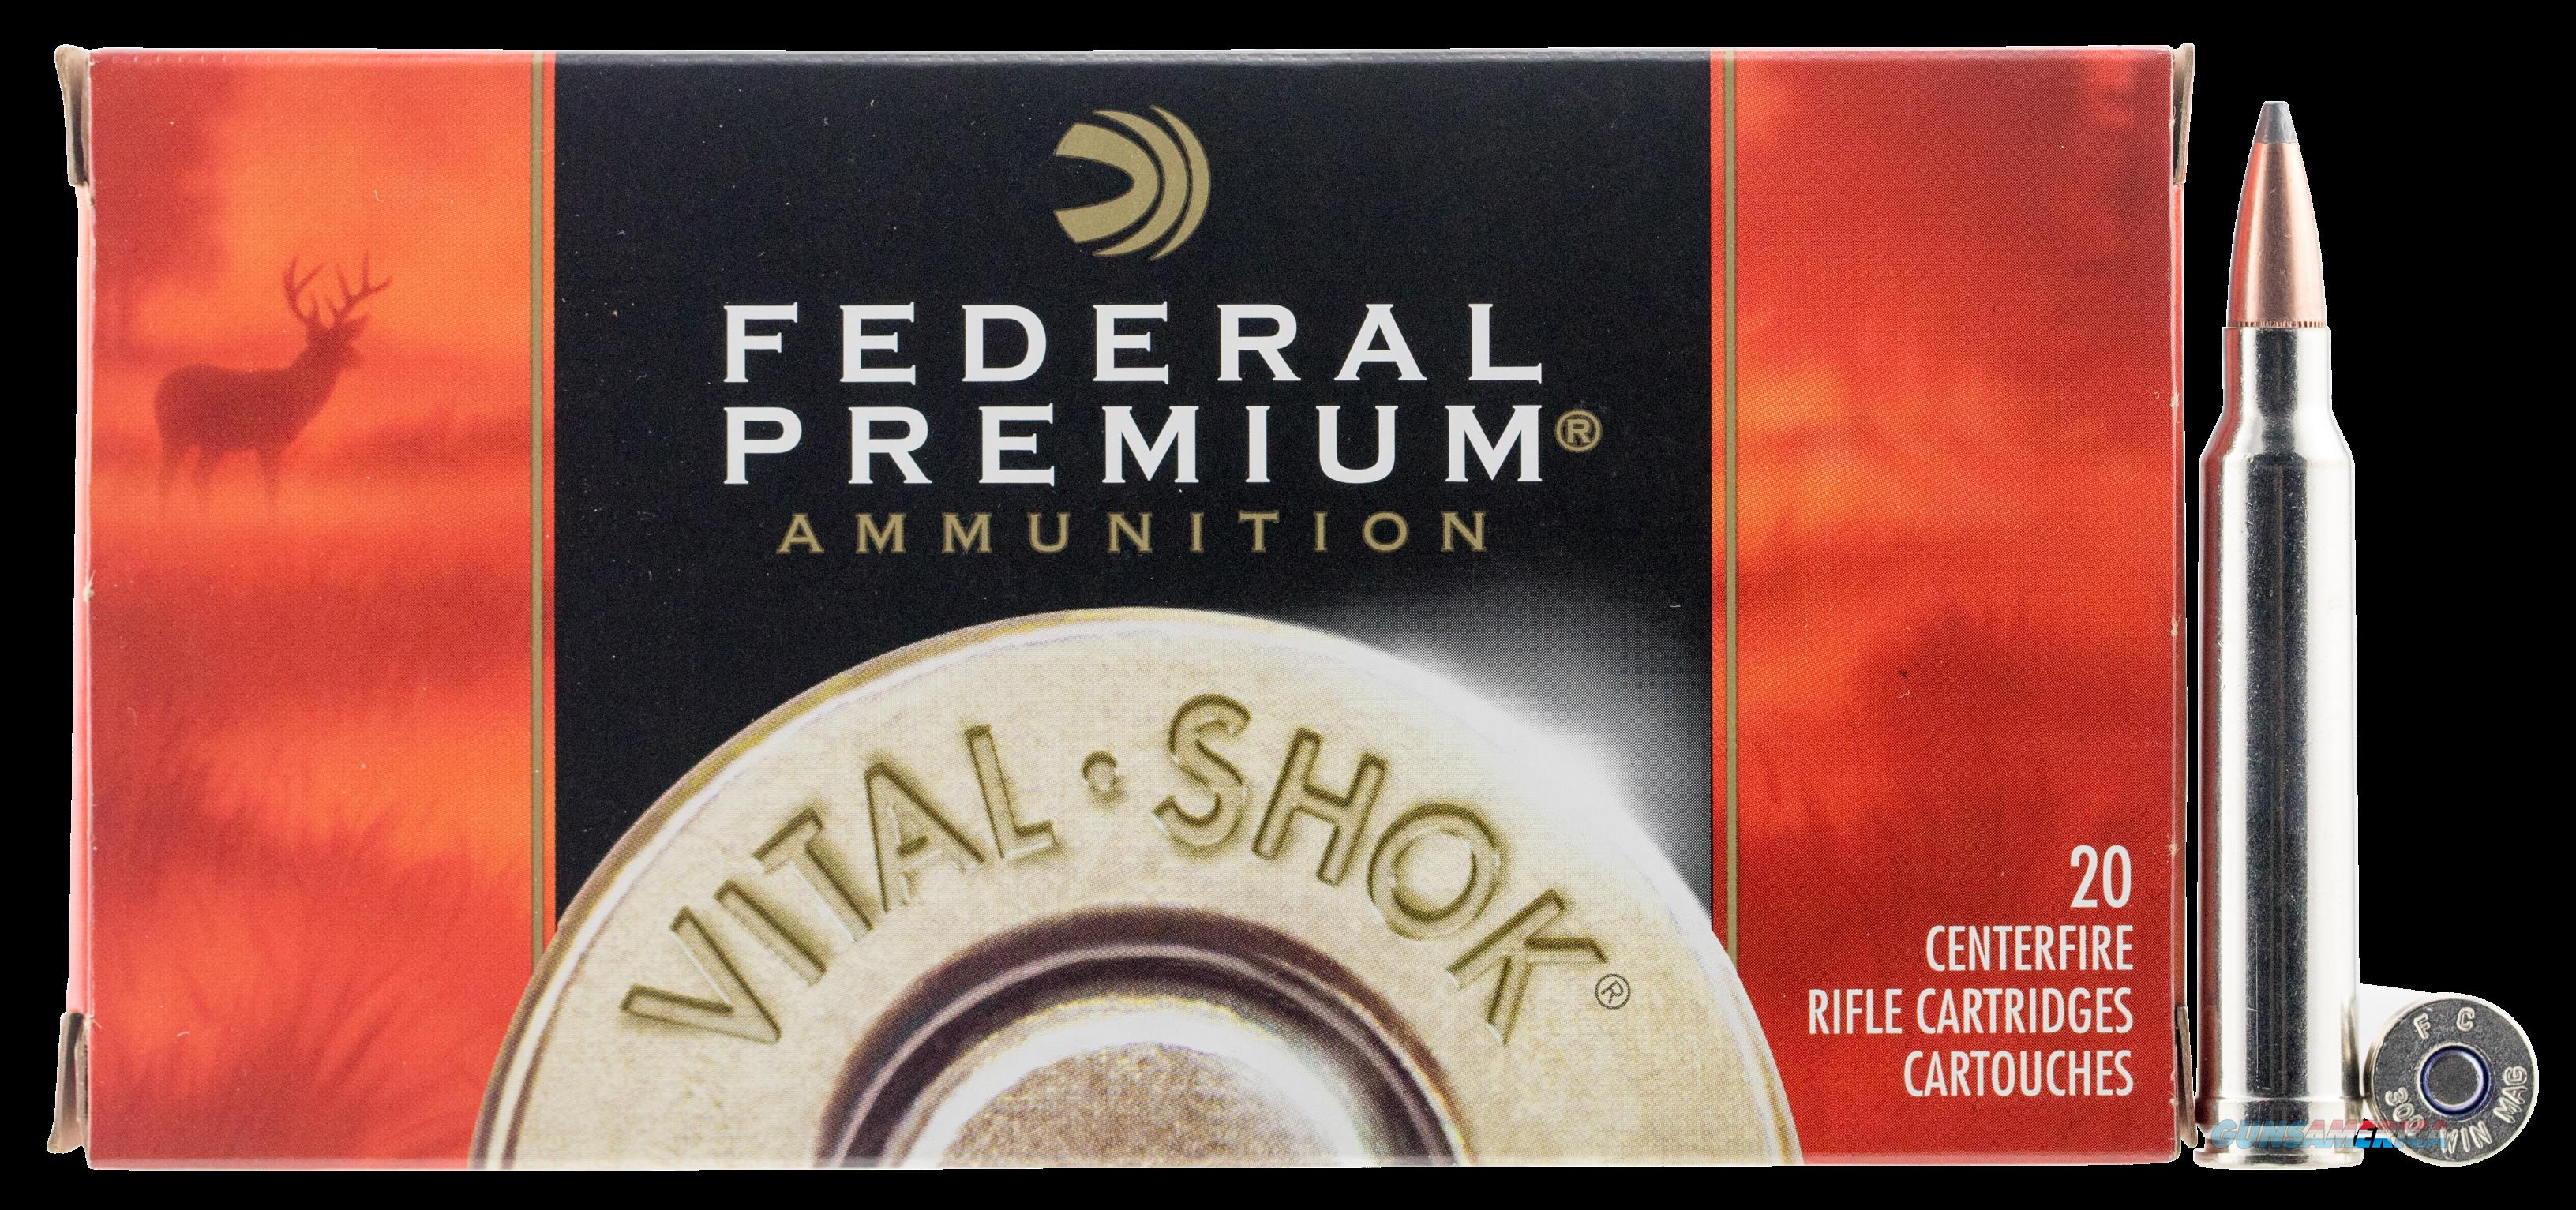 Federal Premium, Fed P300wk     300     165 Np               20-10  Guns > Pistols > 1911 Pistol Copies (non-Colt)